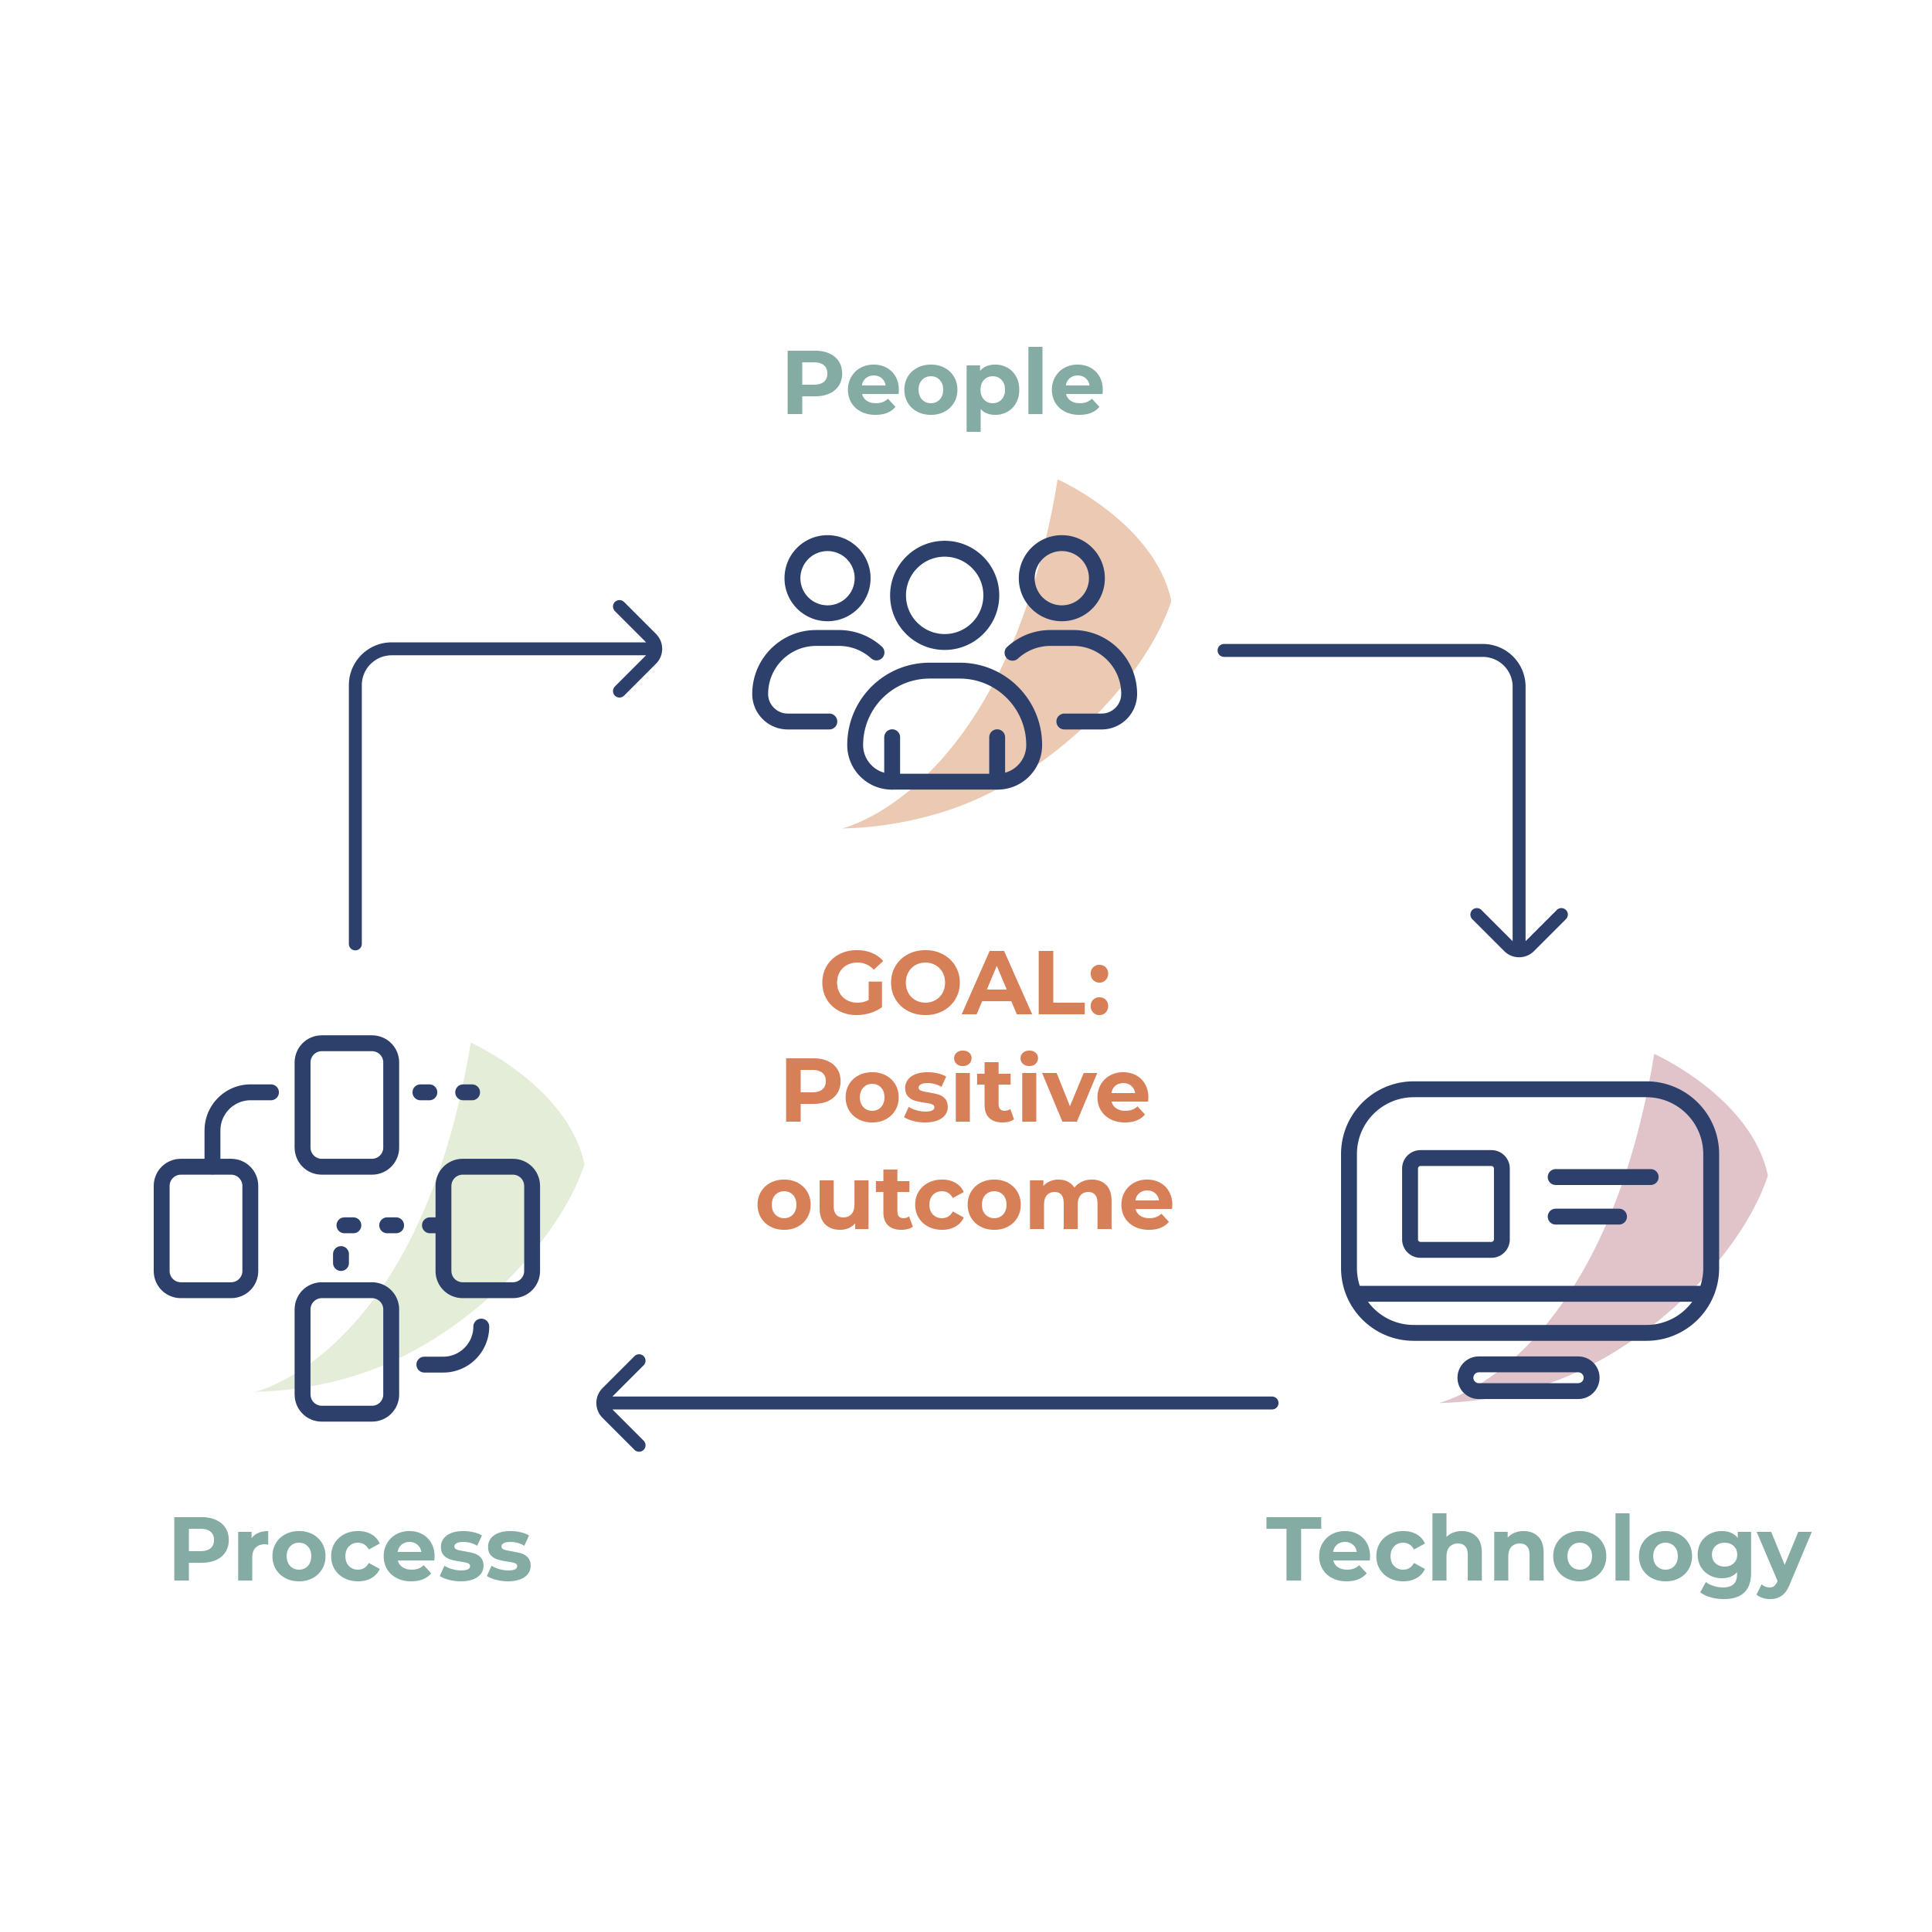 Core_People_Process_Technology_Graphic_V1